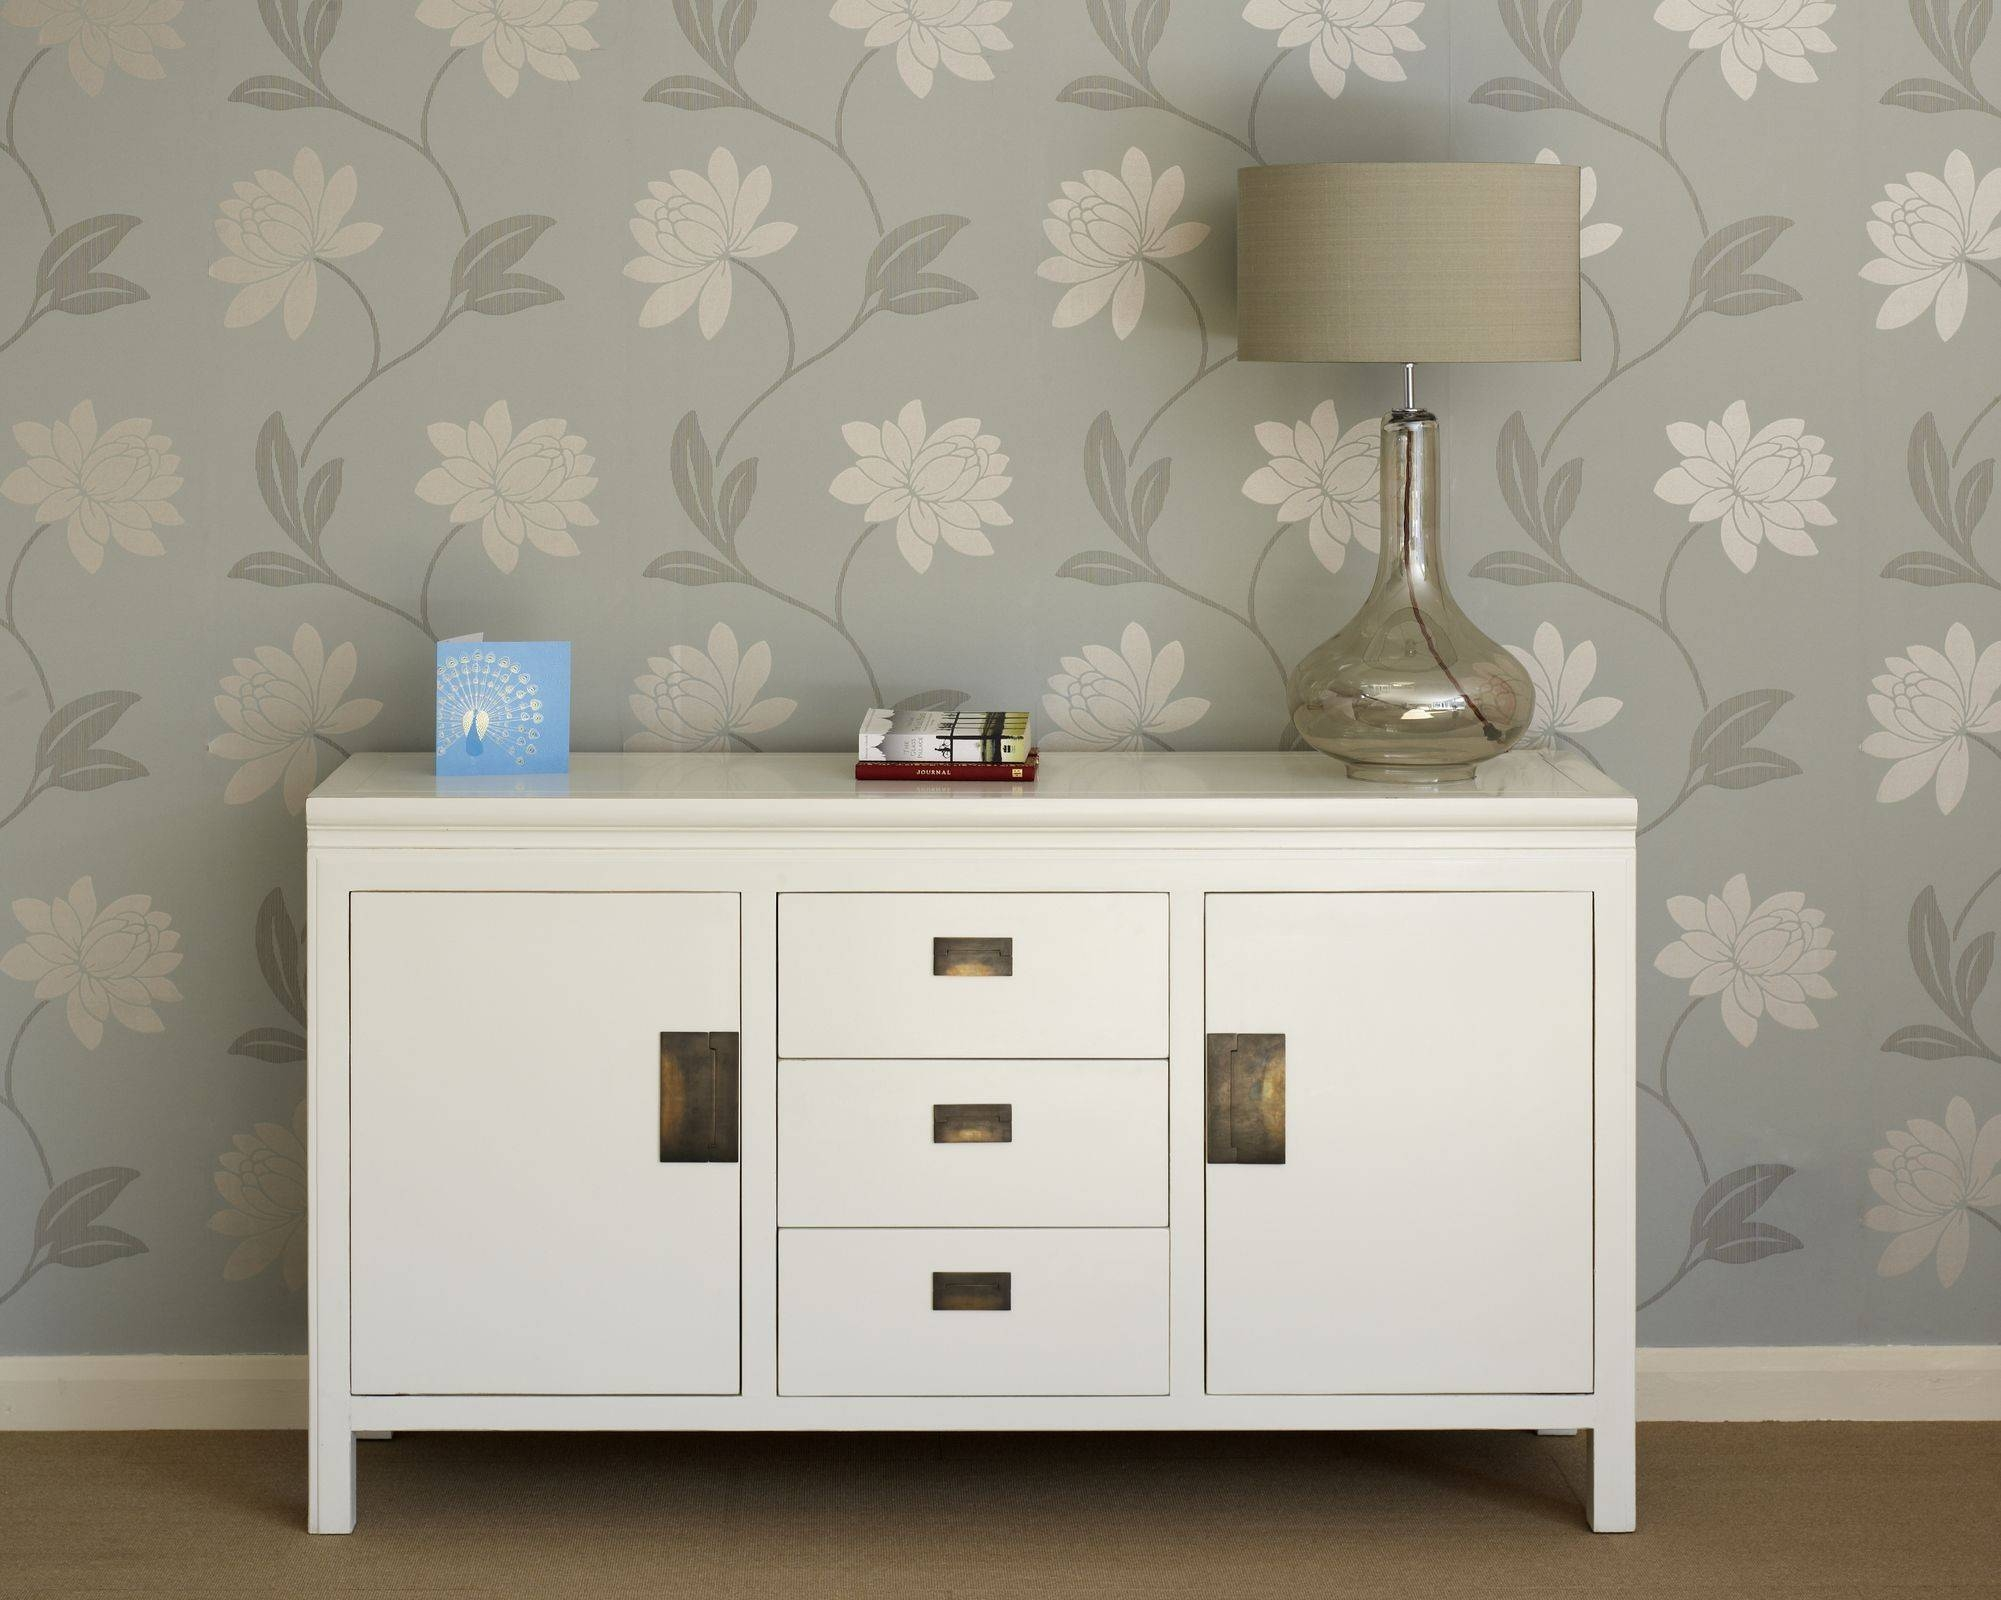 Oriental White Lacquer Sideboards – Shanxi Throughout Large White Sideboards (View 11 of 15)